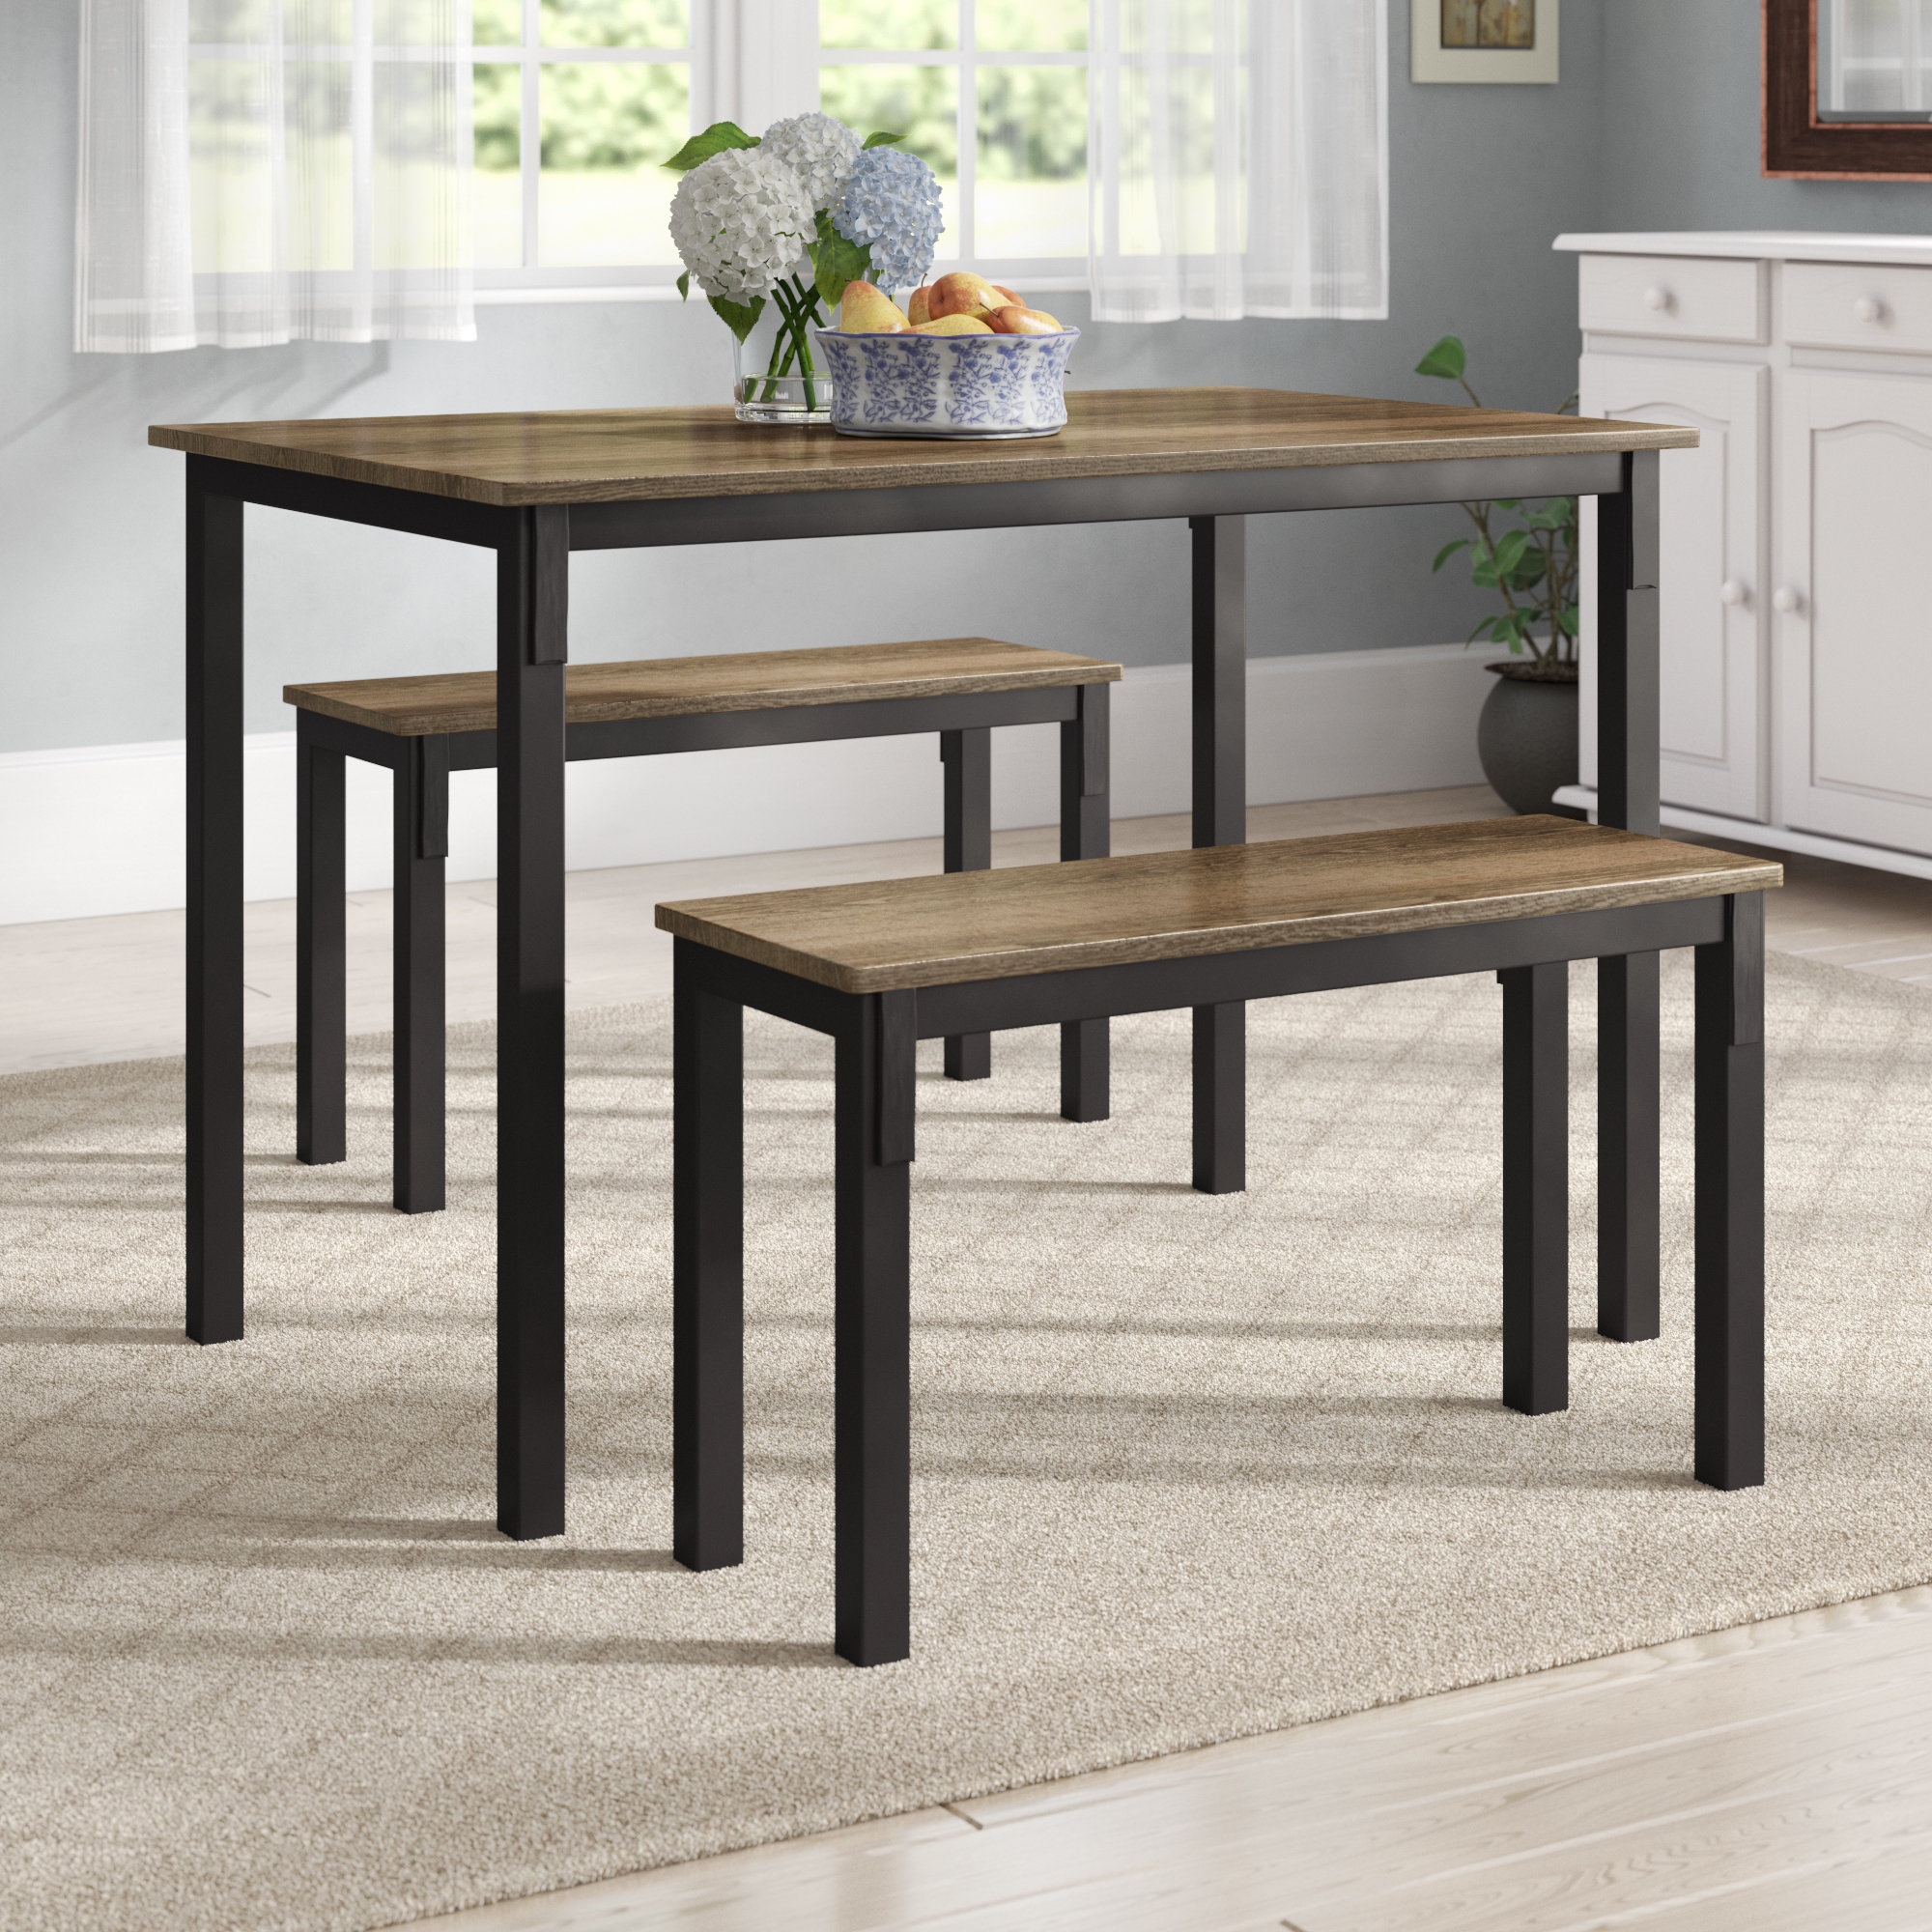 Rossiter 3 Piece Dining Set In Most Recently Released Rossiter 3 Piece Dining Sets (View 1 of 20)